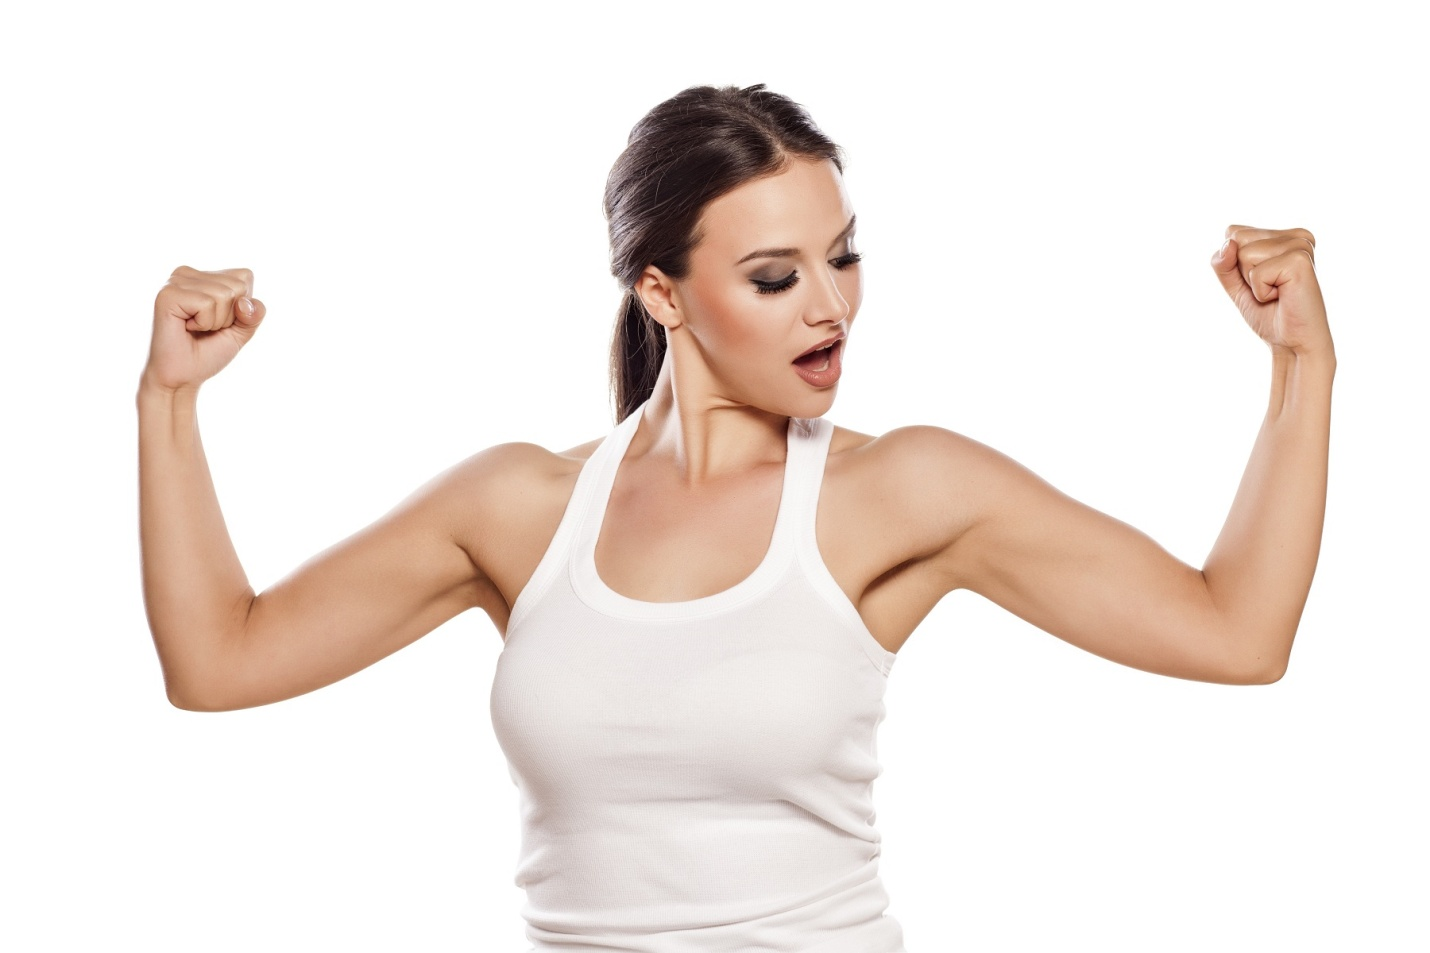 dumbbells woman flexing muscles